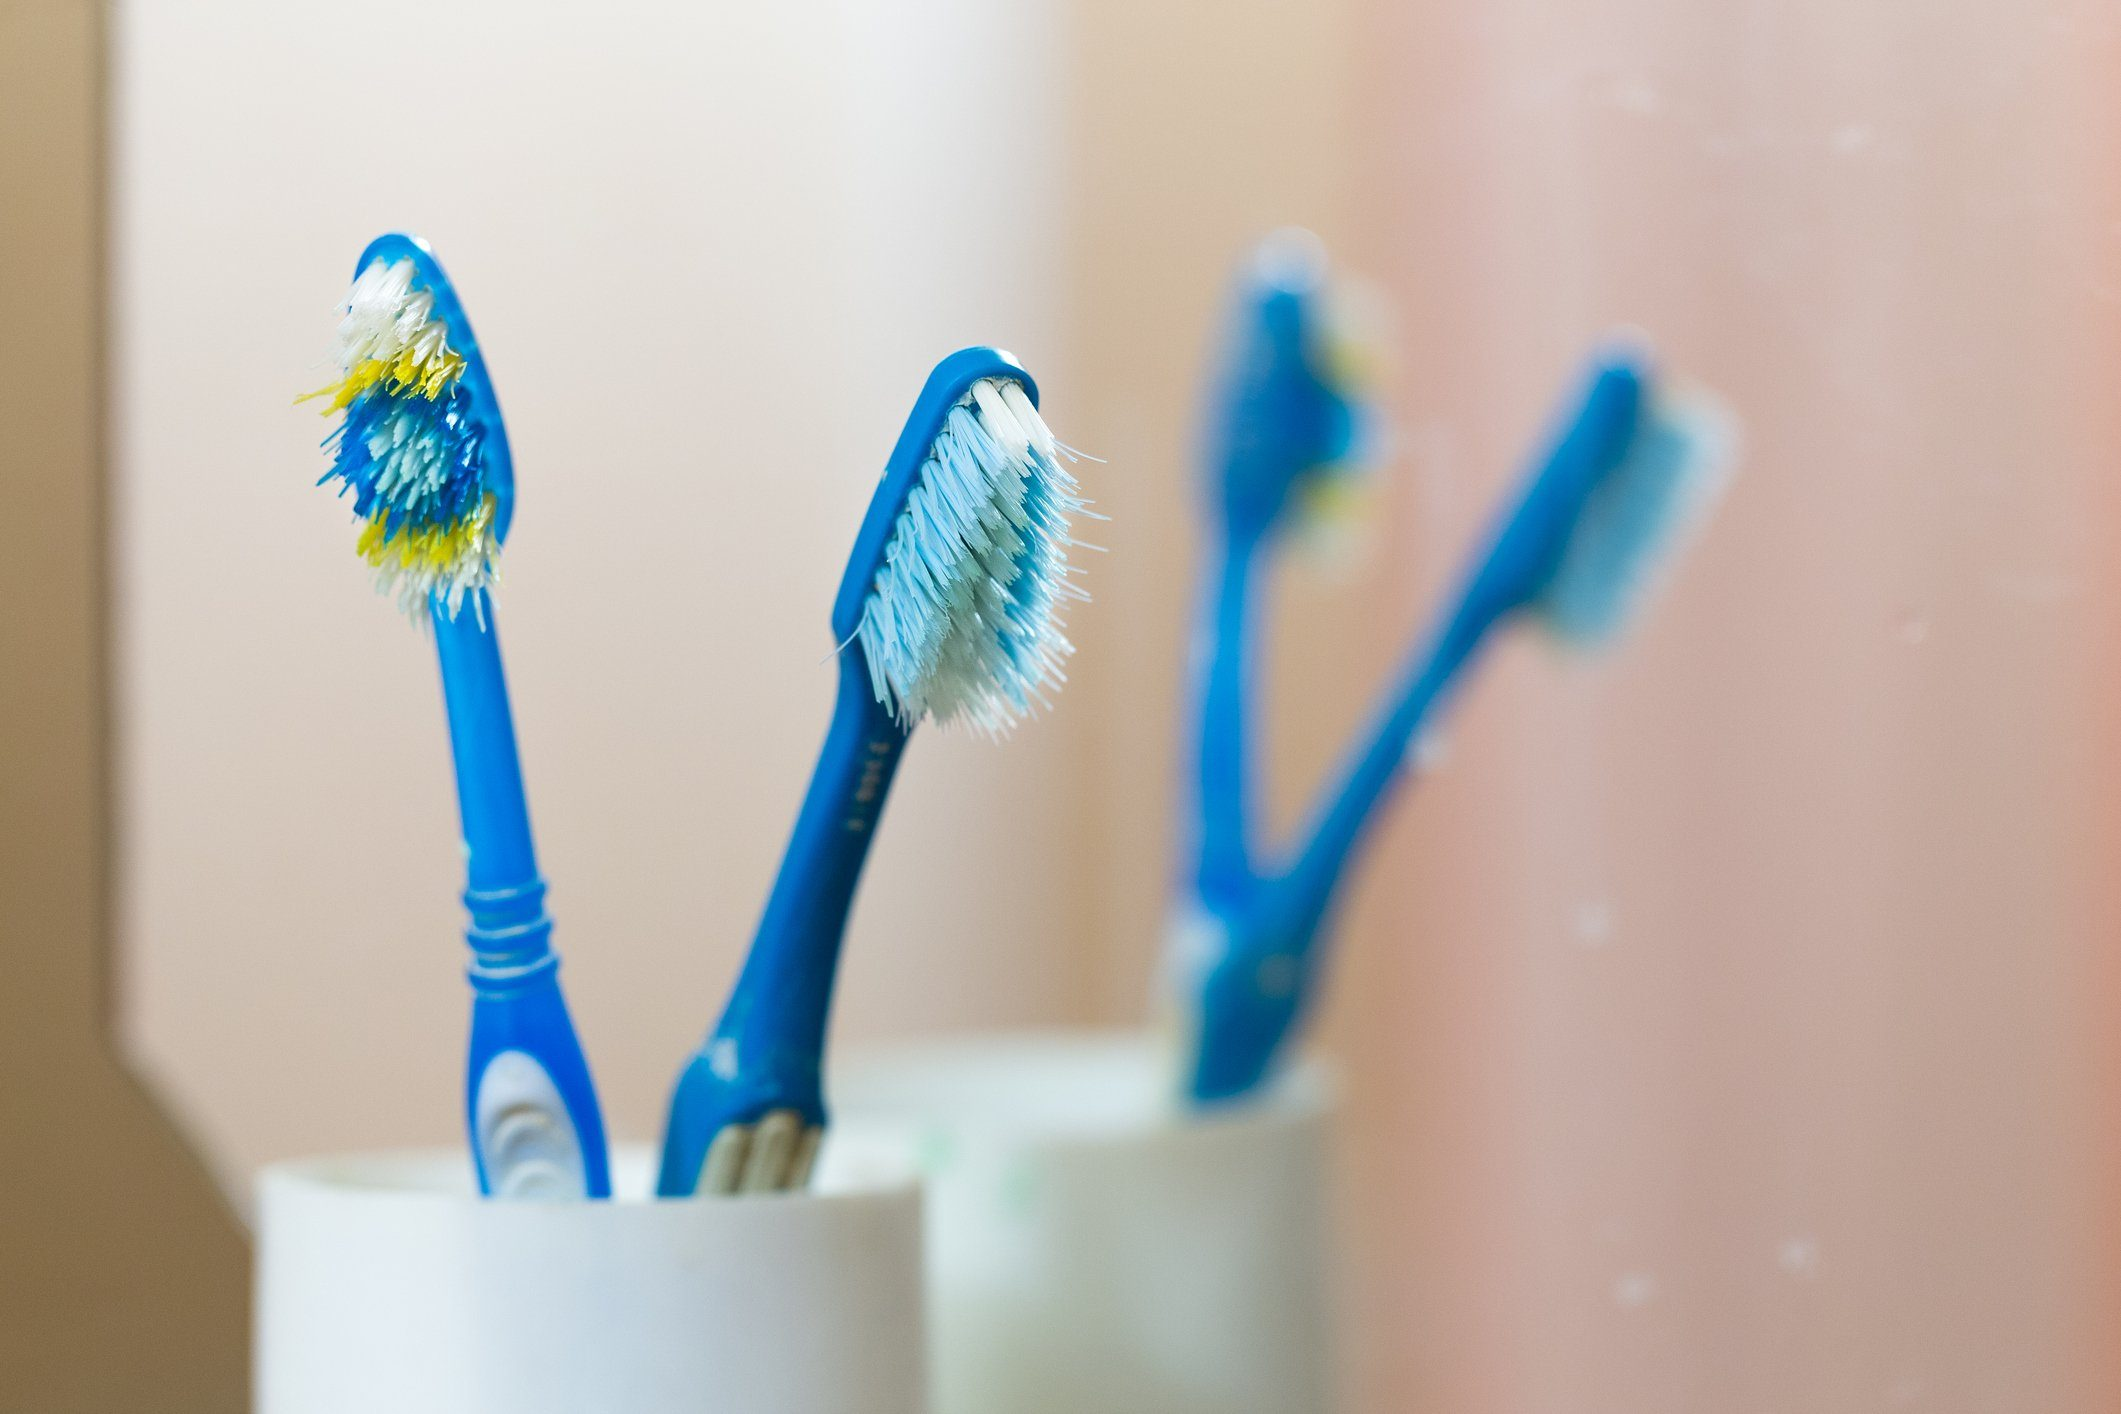 teeth-cleaning mistakes